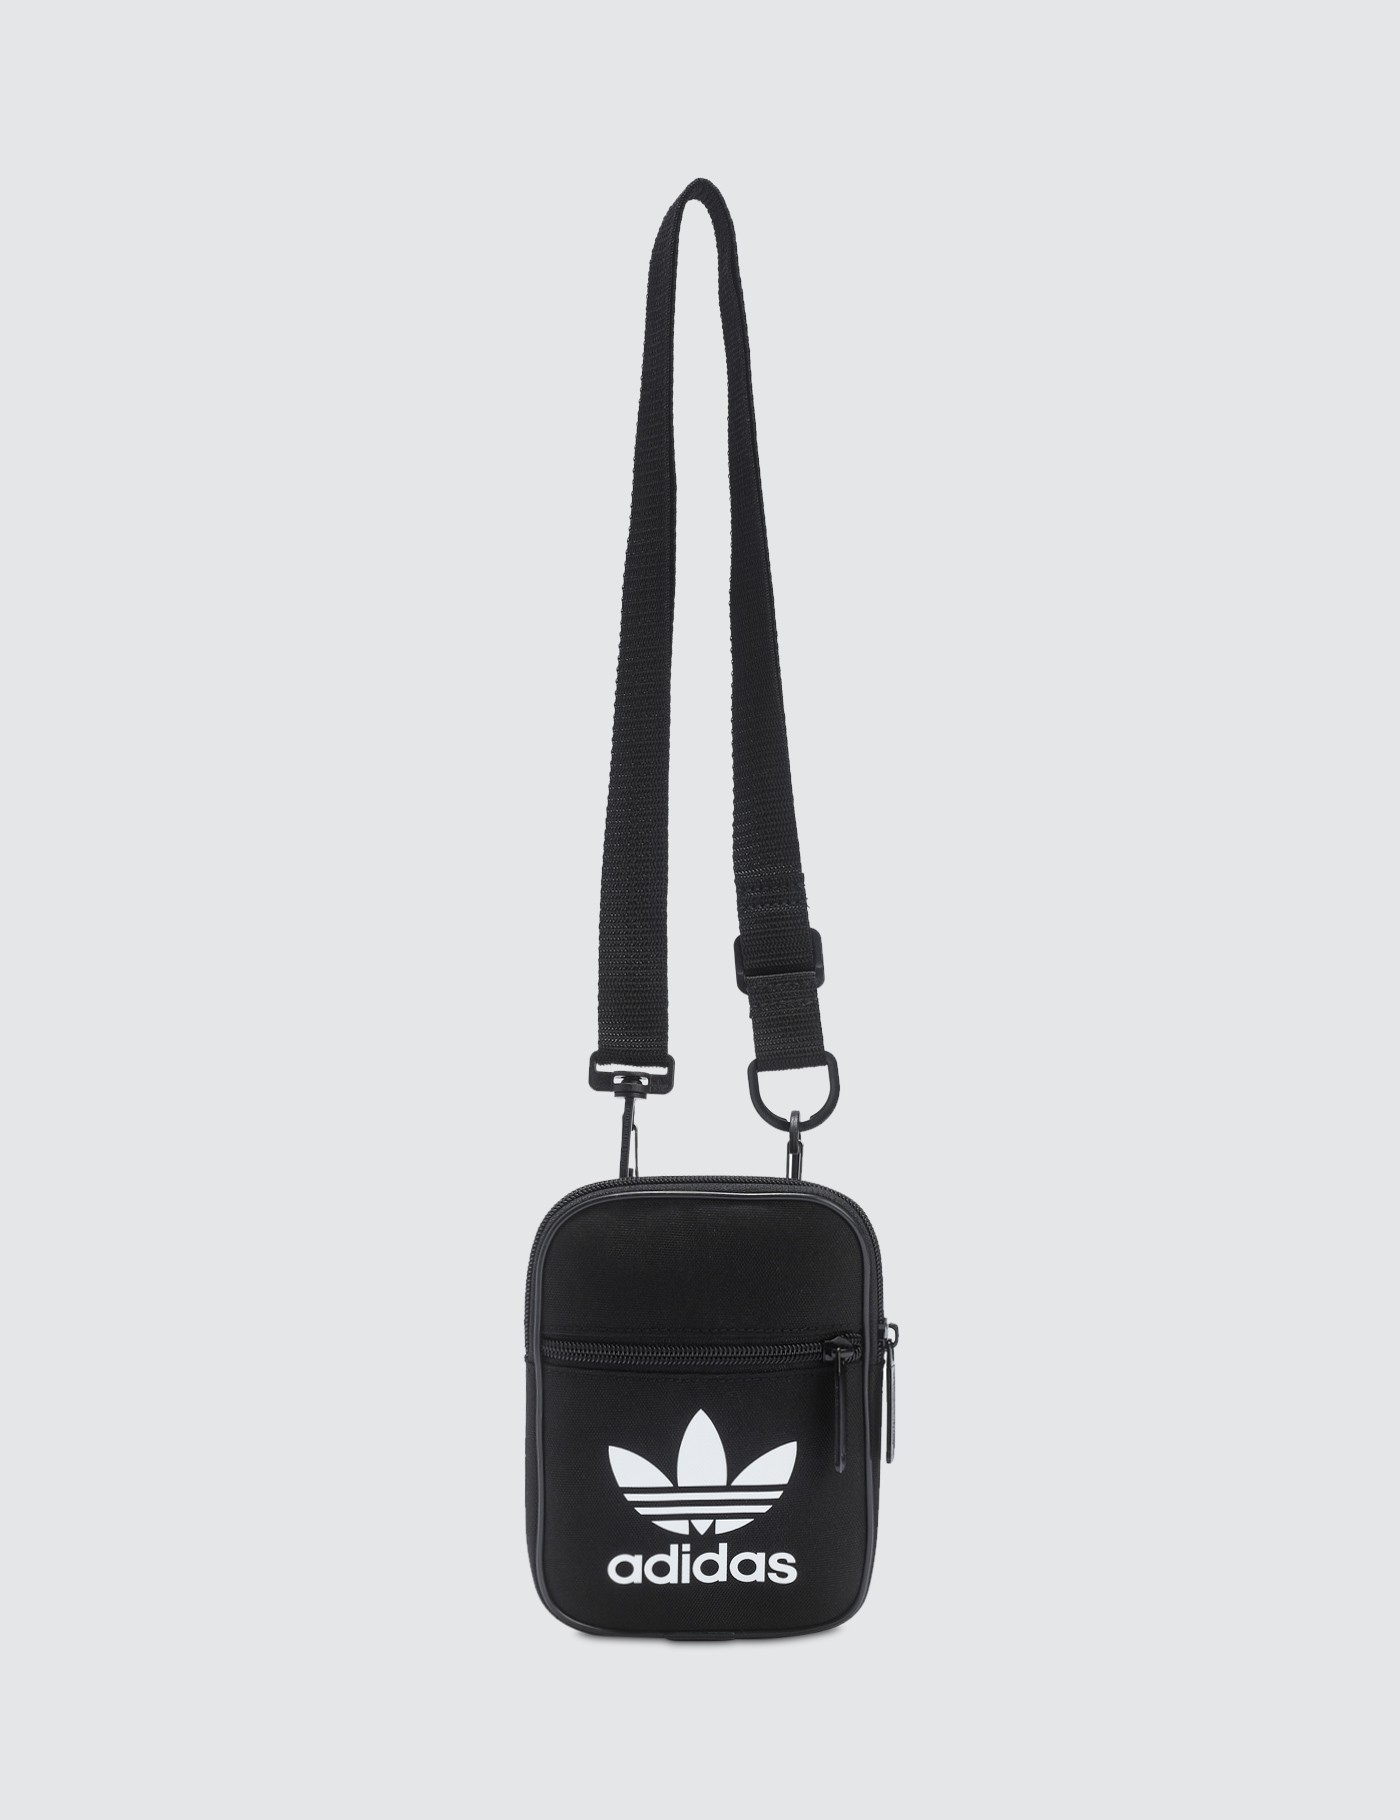 Adidas Originals Trefoil Festival Bag